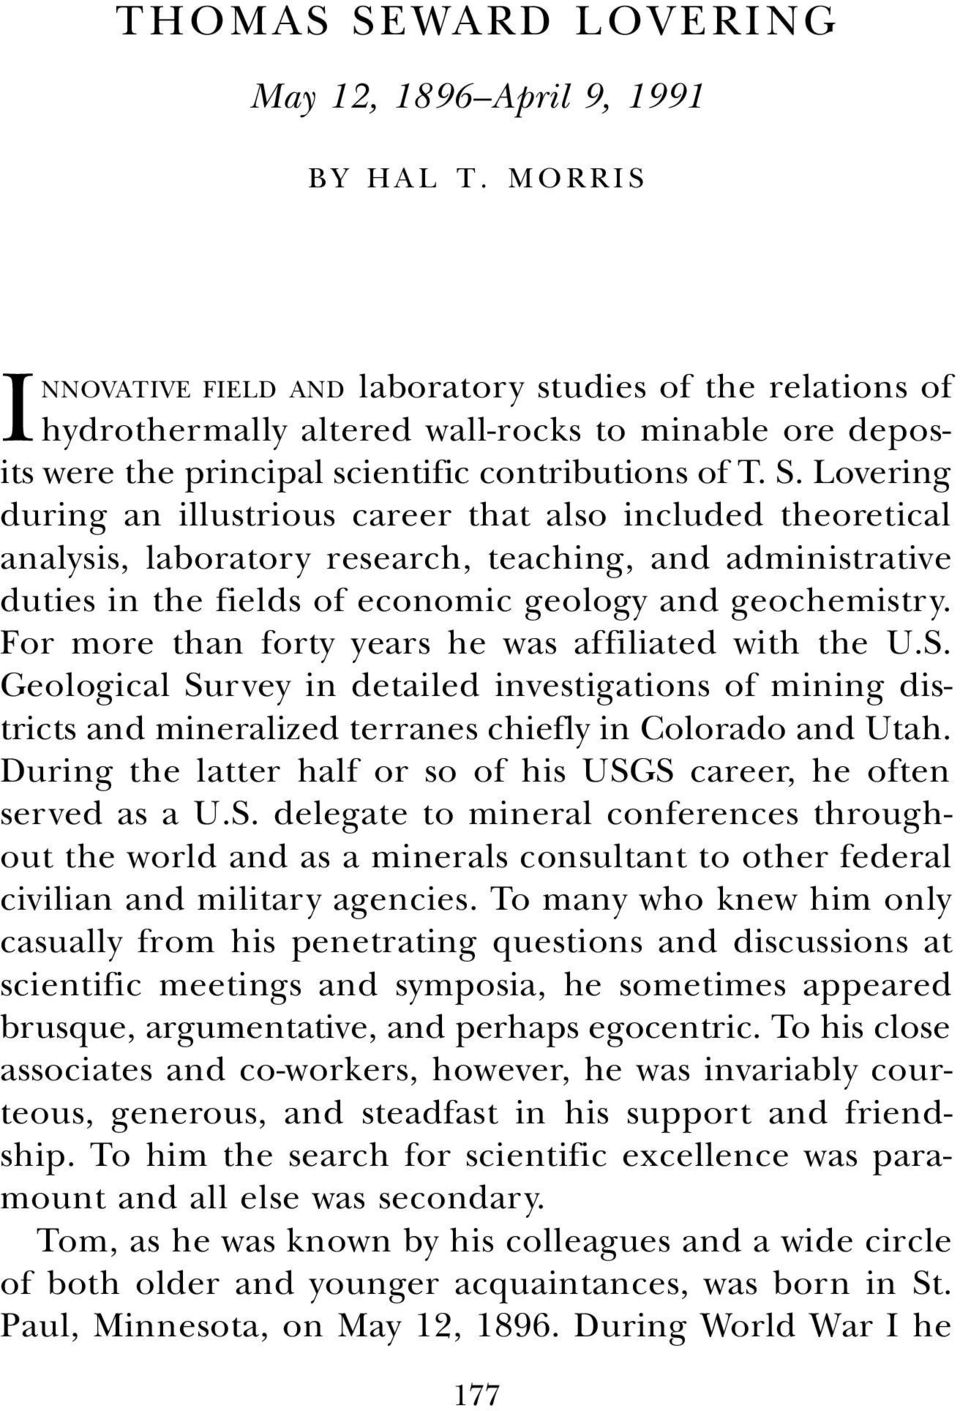 Lovering during an illustrious career that also included theoretical analysis, laboratory research, teaching, and administrative duties in the fields of economic geology and geochemistry.